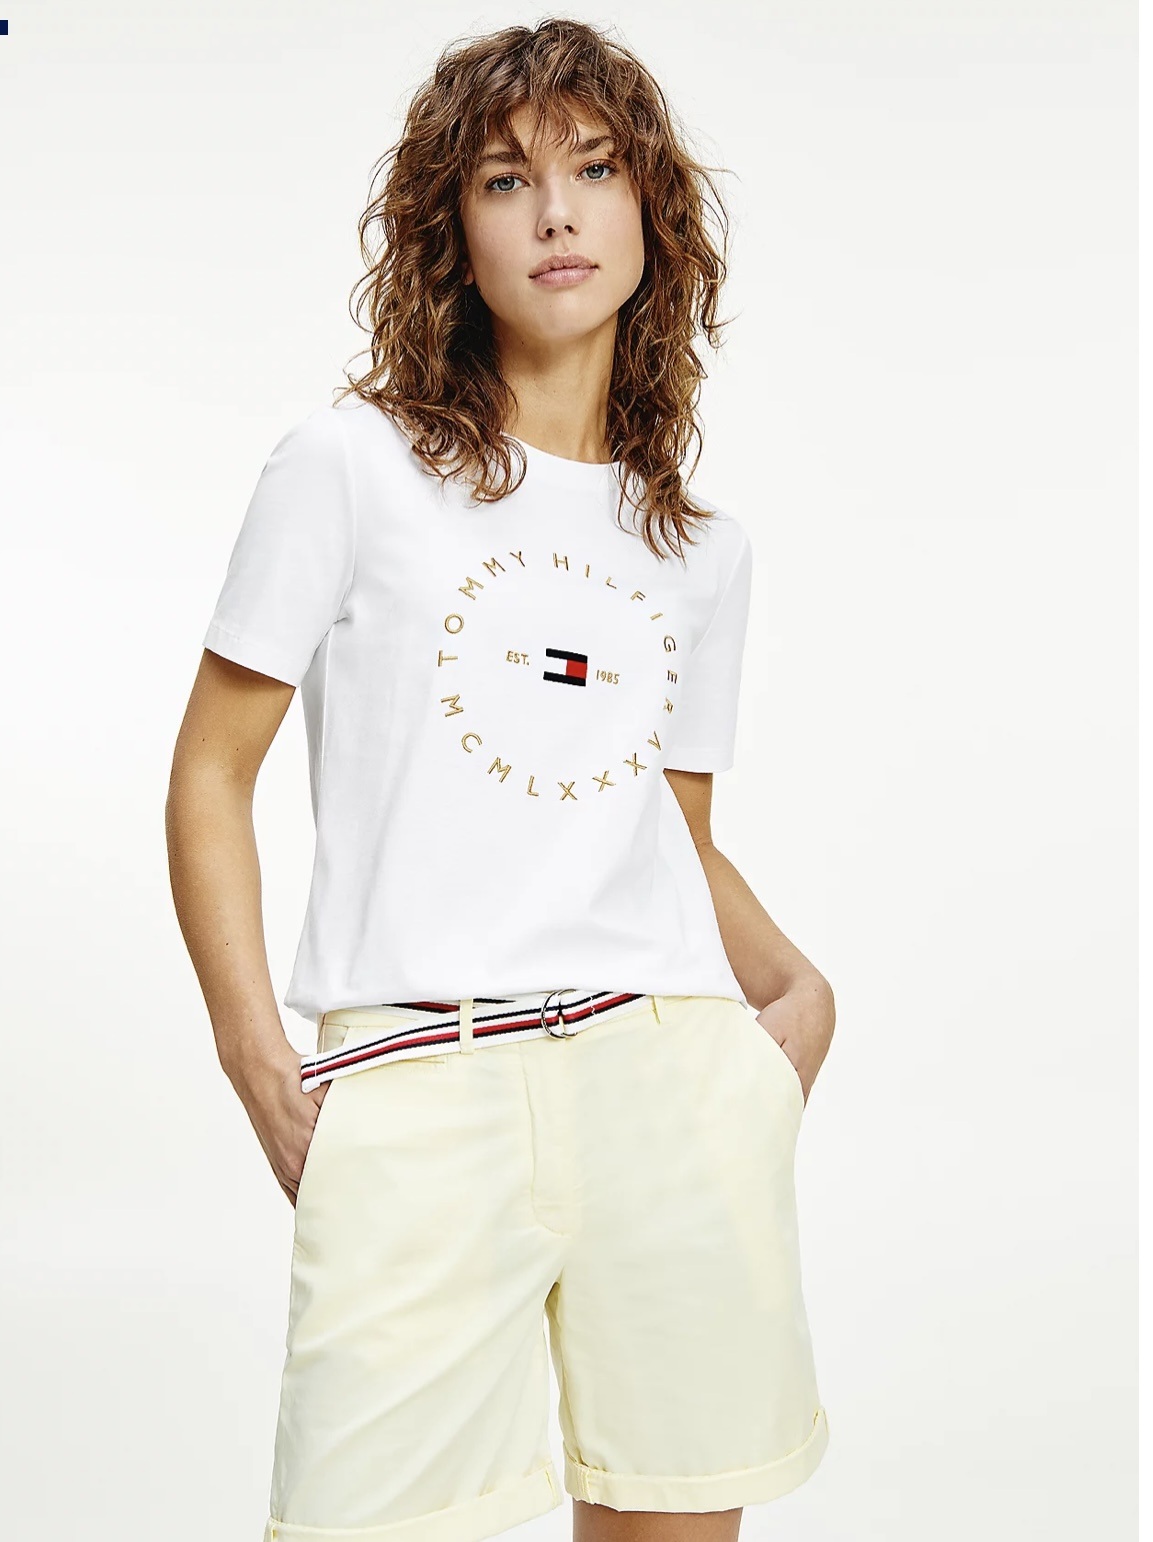 TOMMY HILFIGER T-SHIRT IN COTONE BIOLOGICO CON LOGO